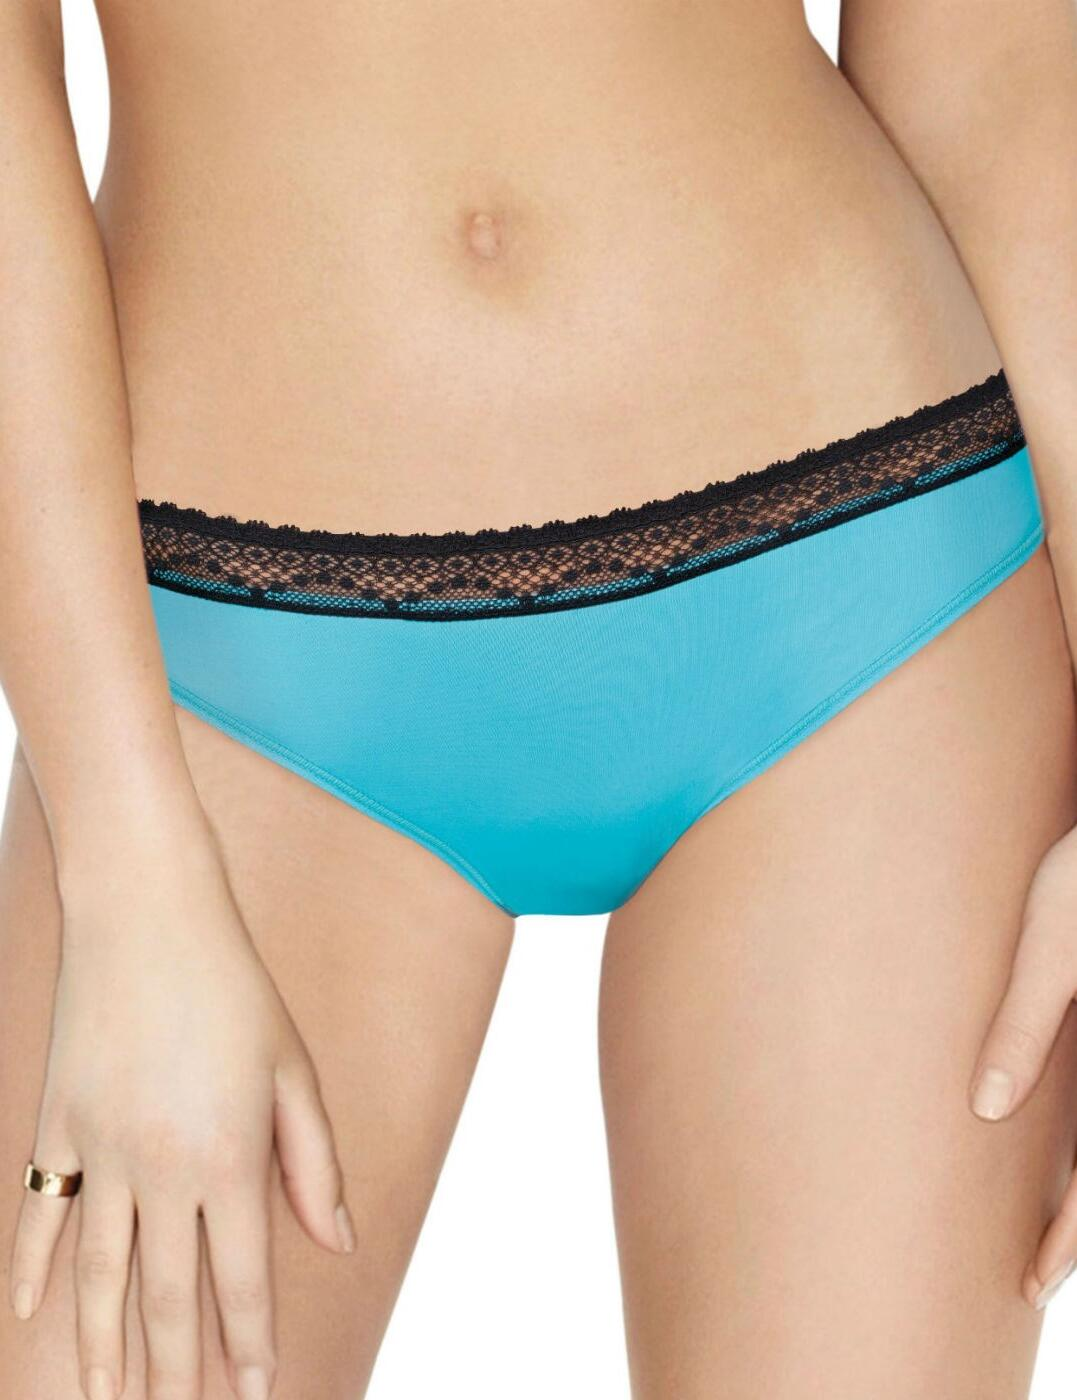 W01PE Wonderbra 'Crazy Dressing Room' Lace Brief  - W01PE Turquoise